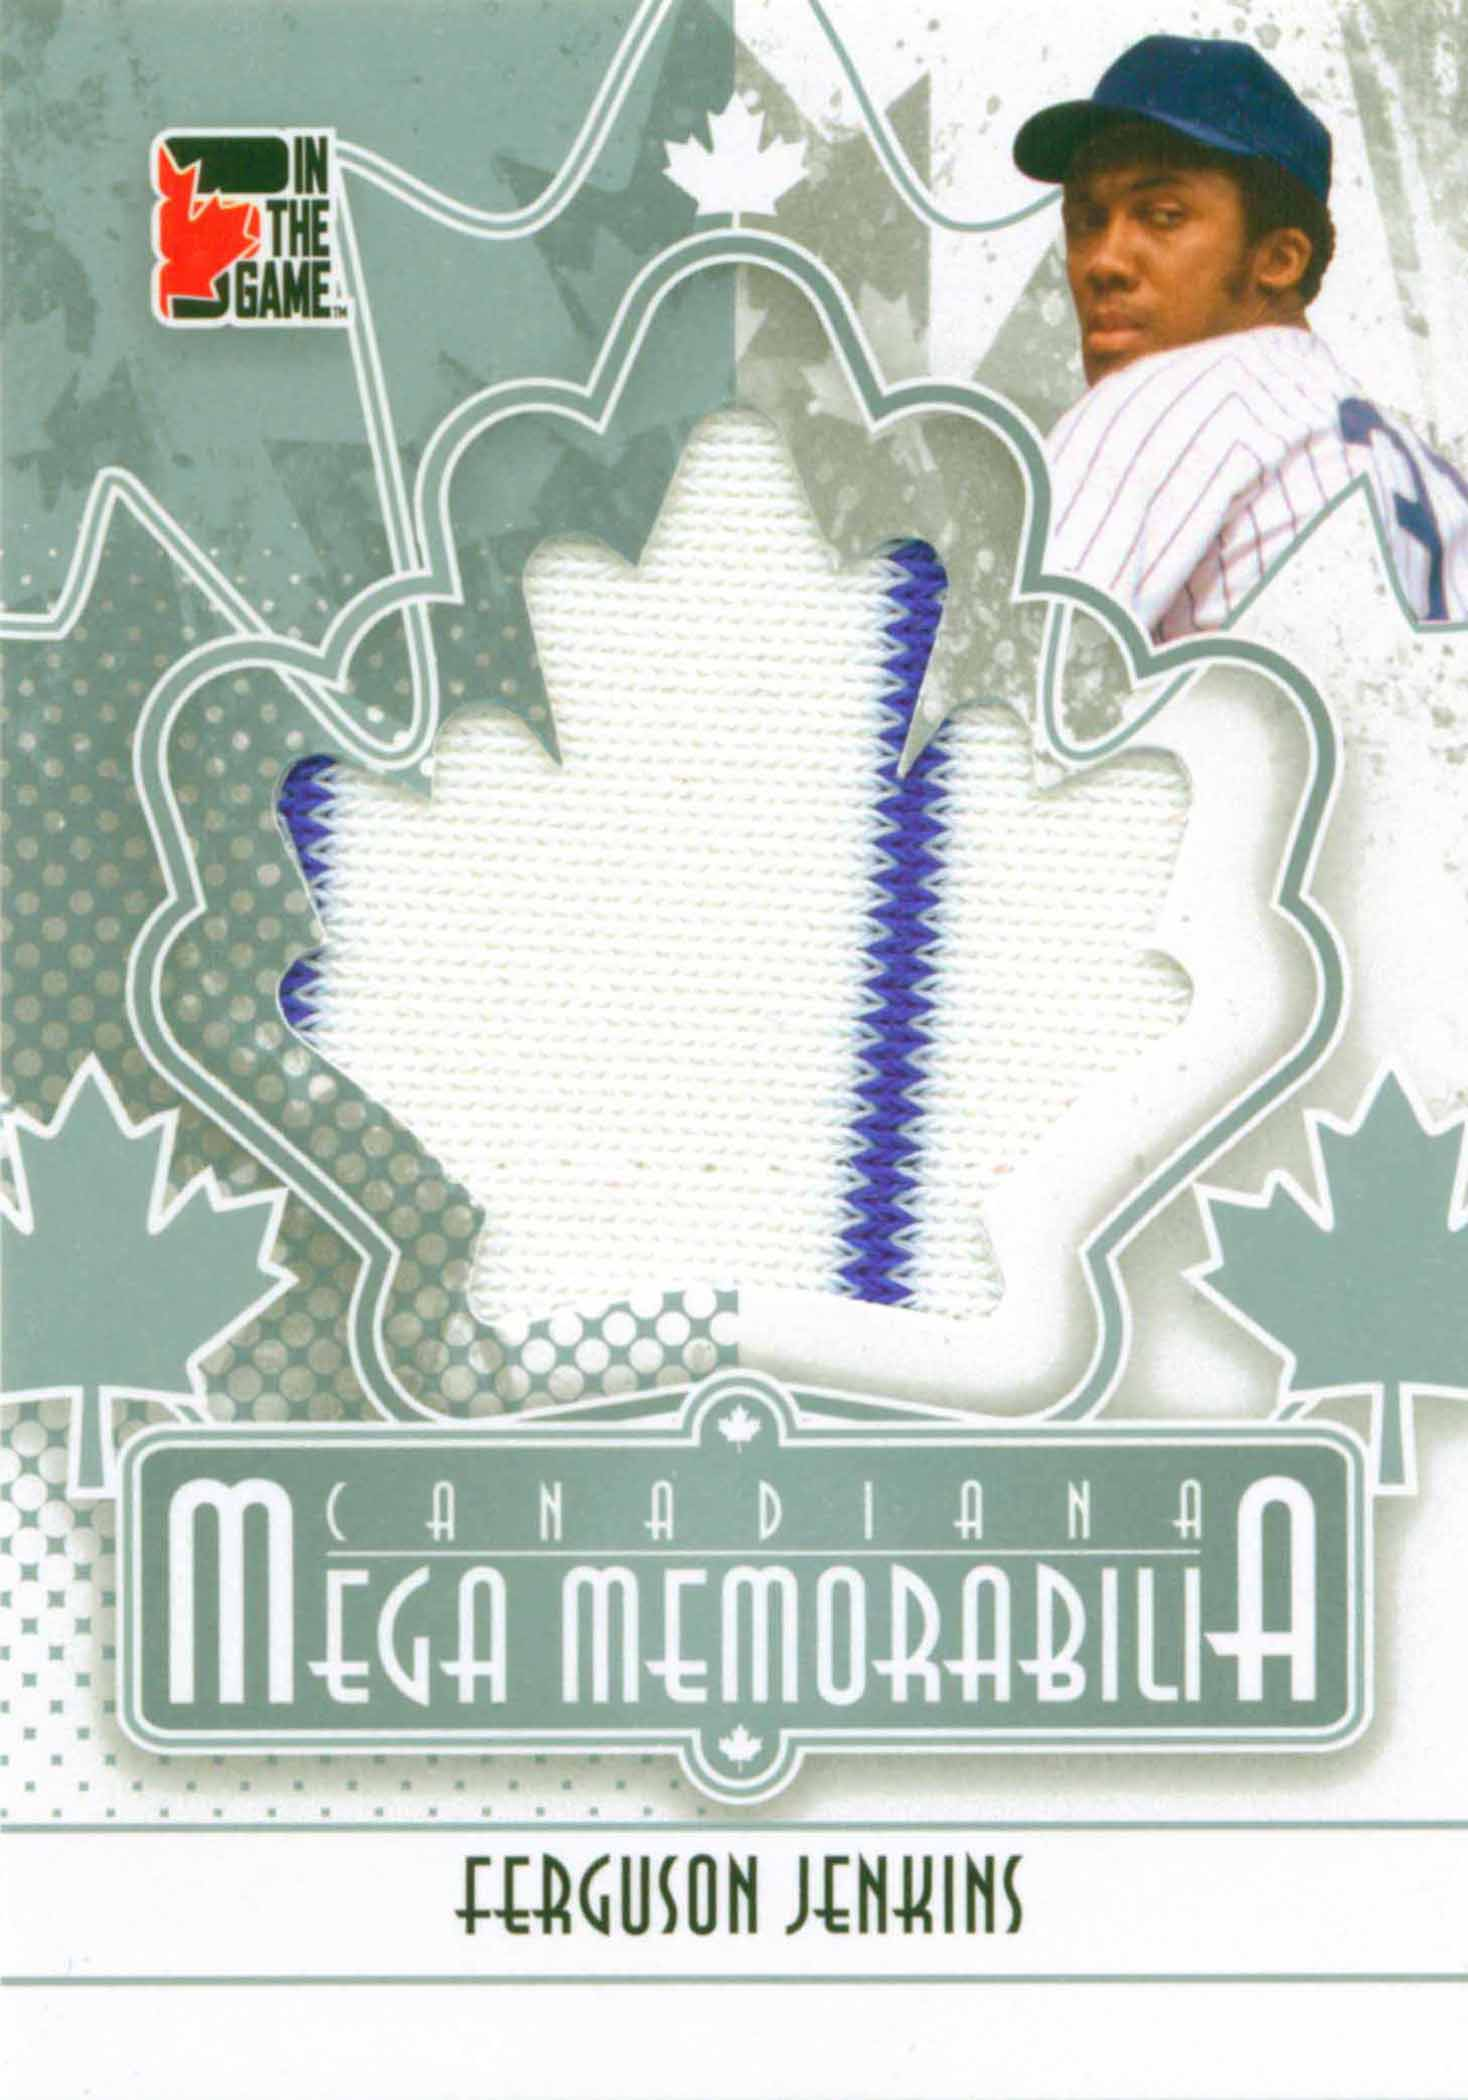 2011 In The Game Canadiana Mega Memorabilia Silver